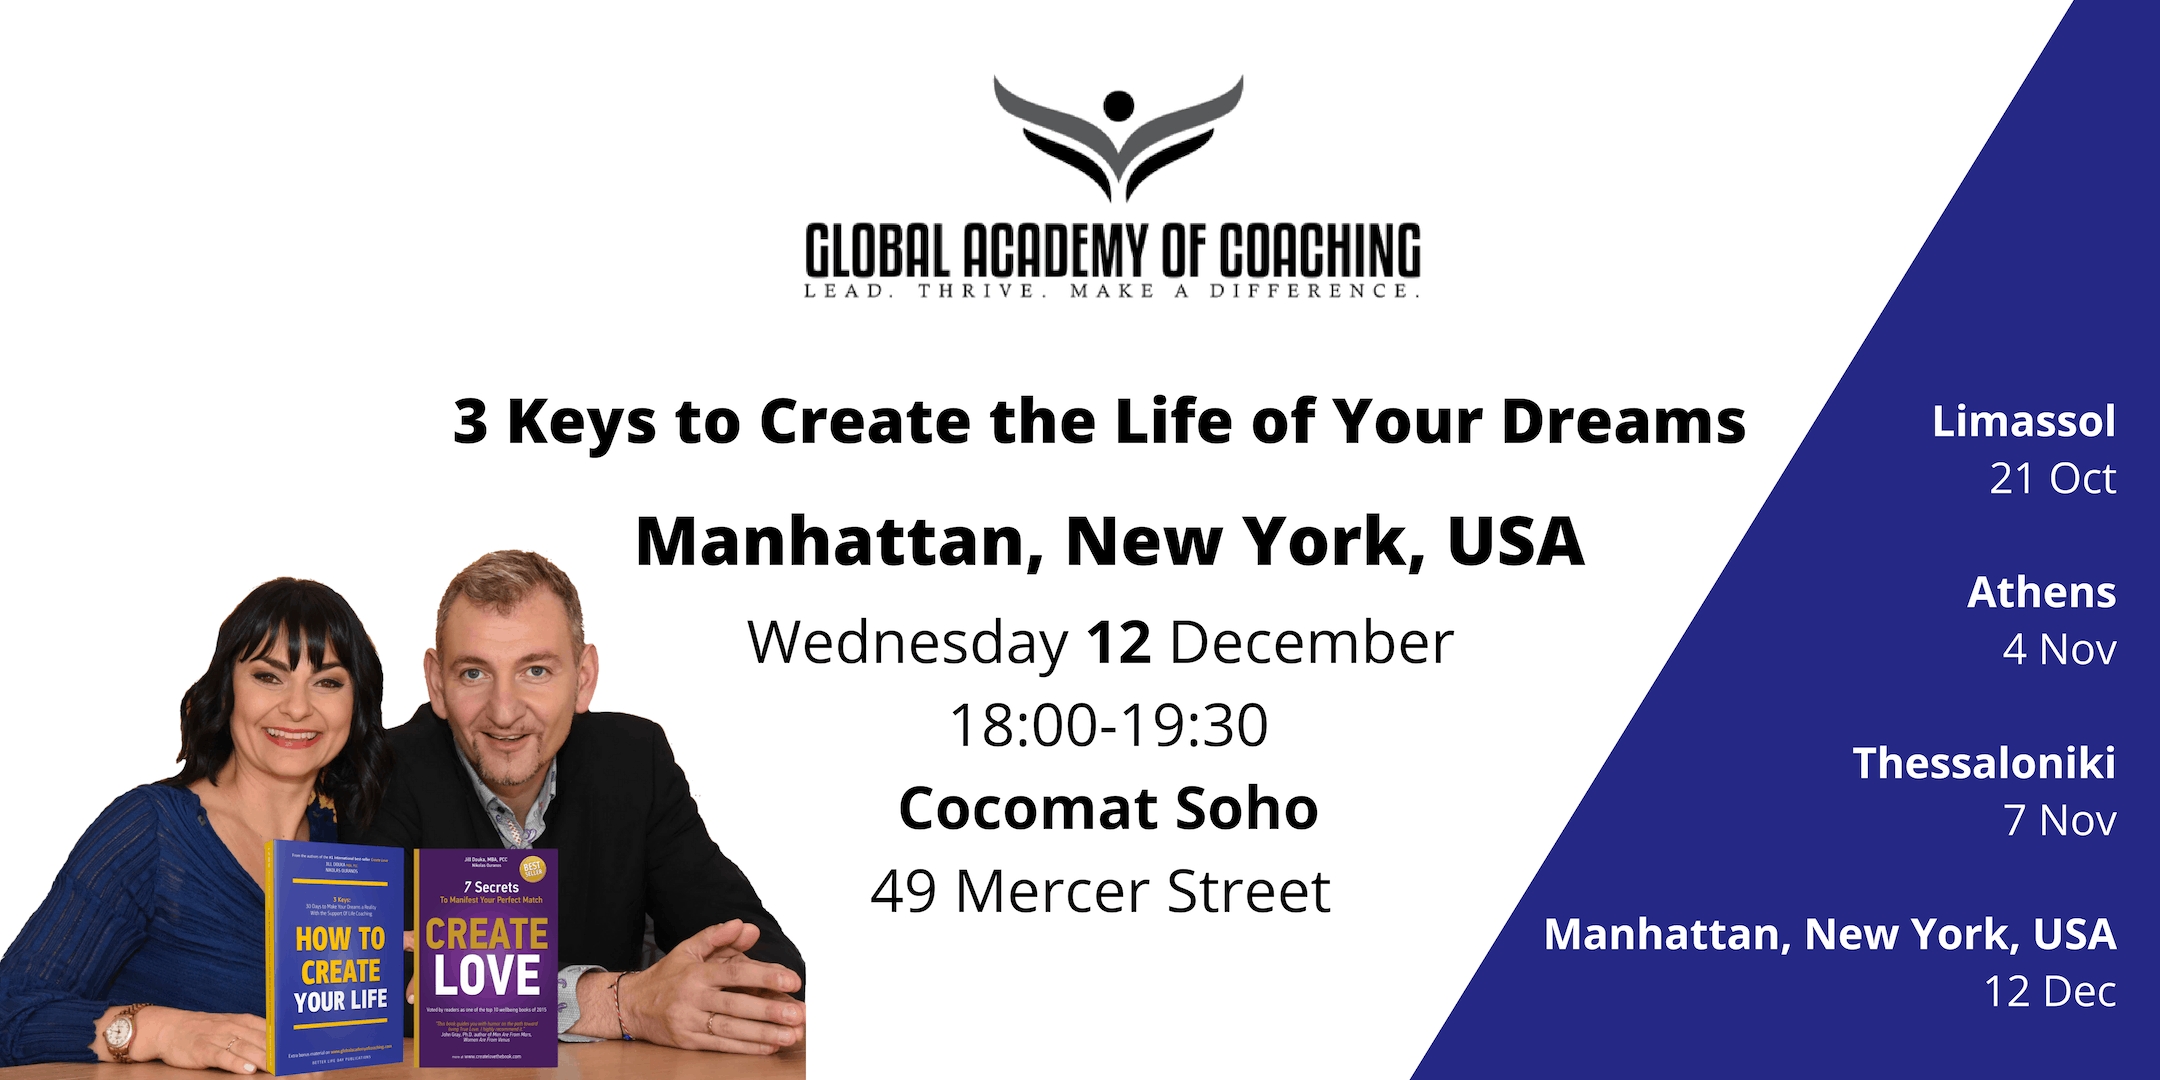 3 Keys to Create the Life of Your Dreams